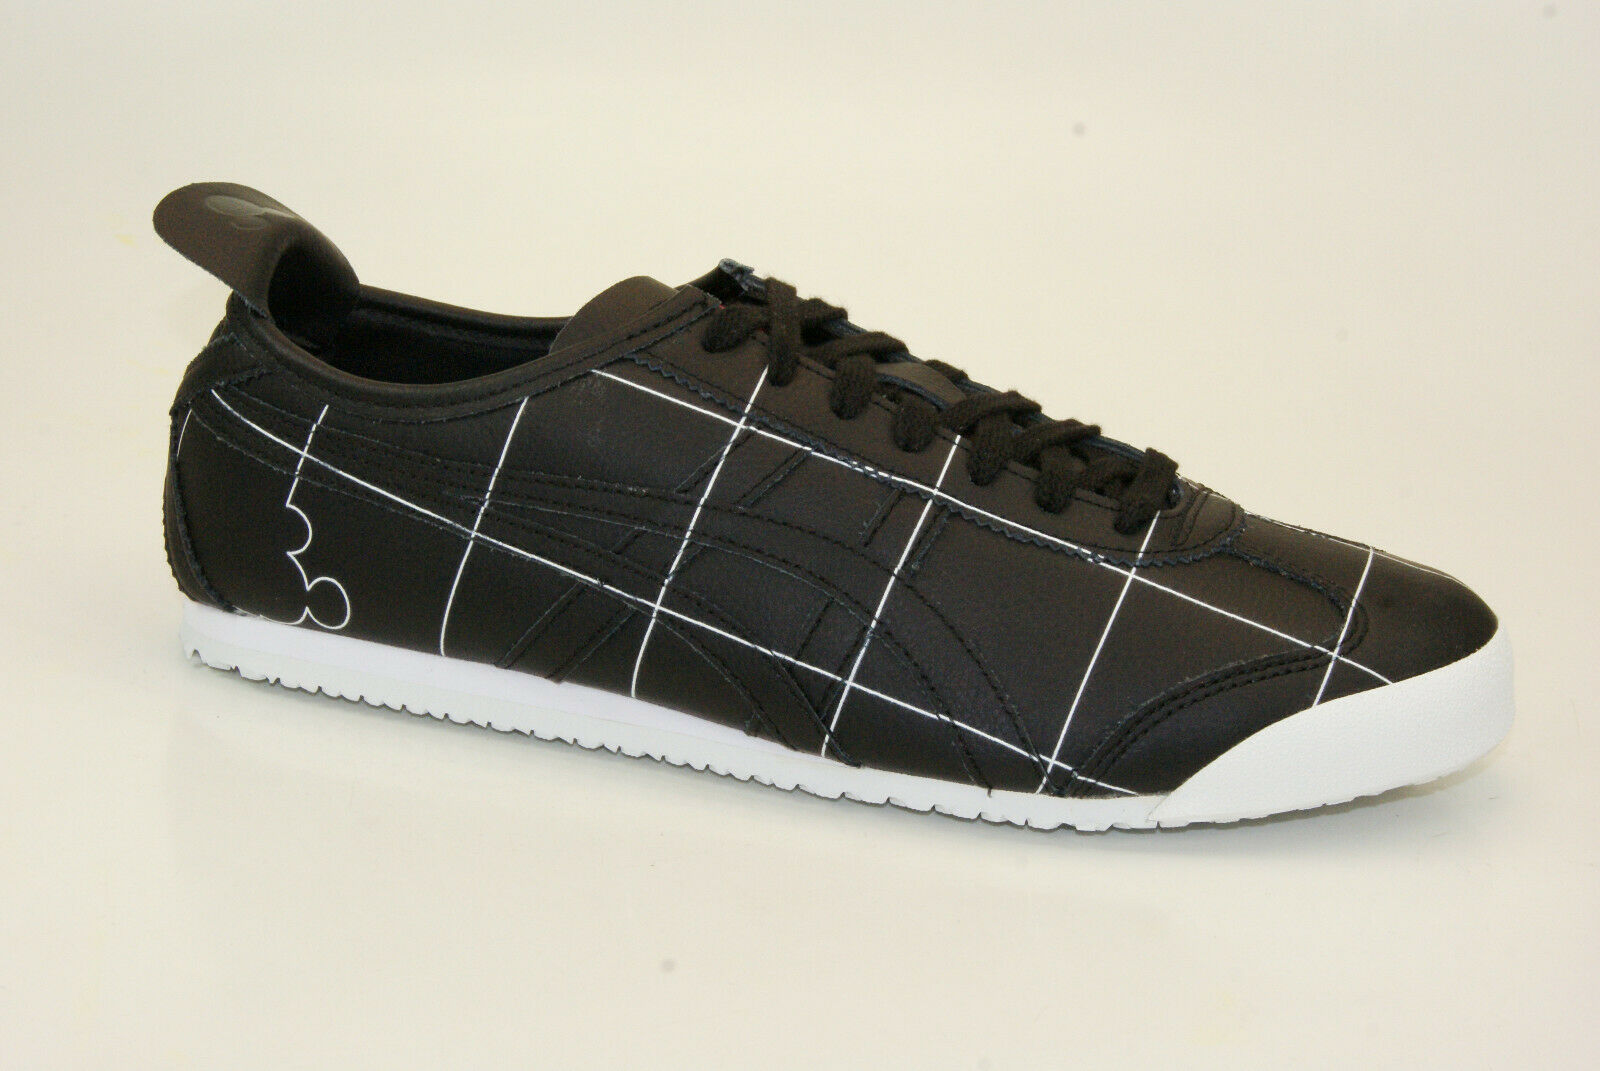 Asics Onitsuka Tiger Mexico 66 Disney Sneakers Trainers Men's Women's shoes